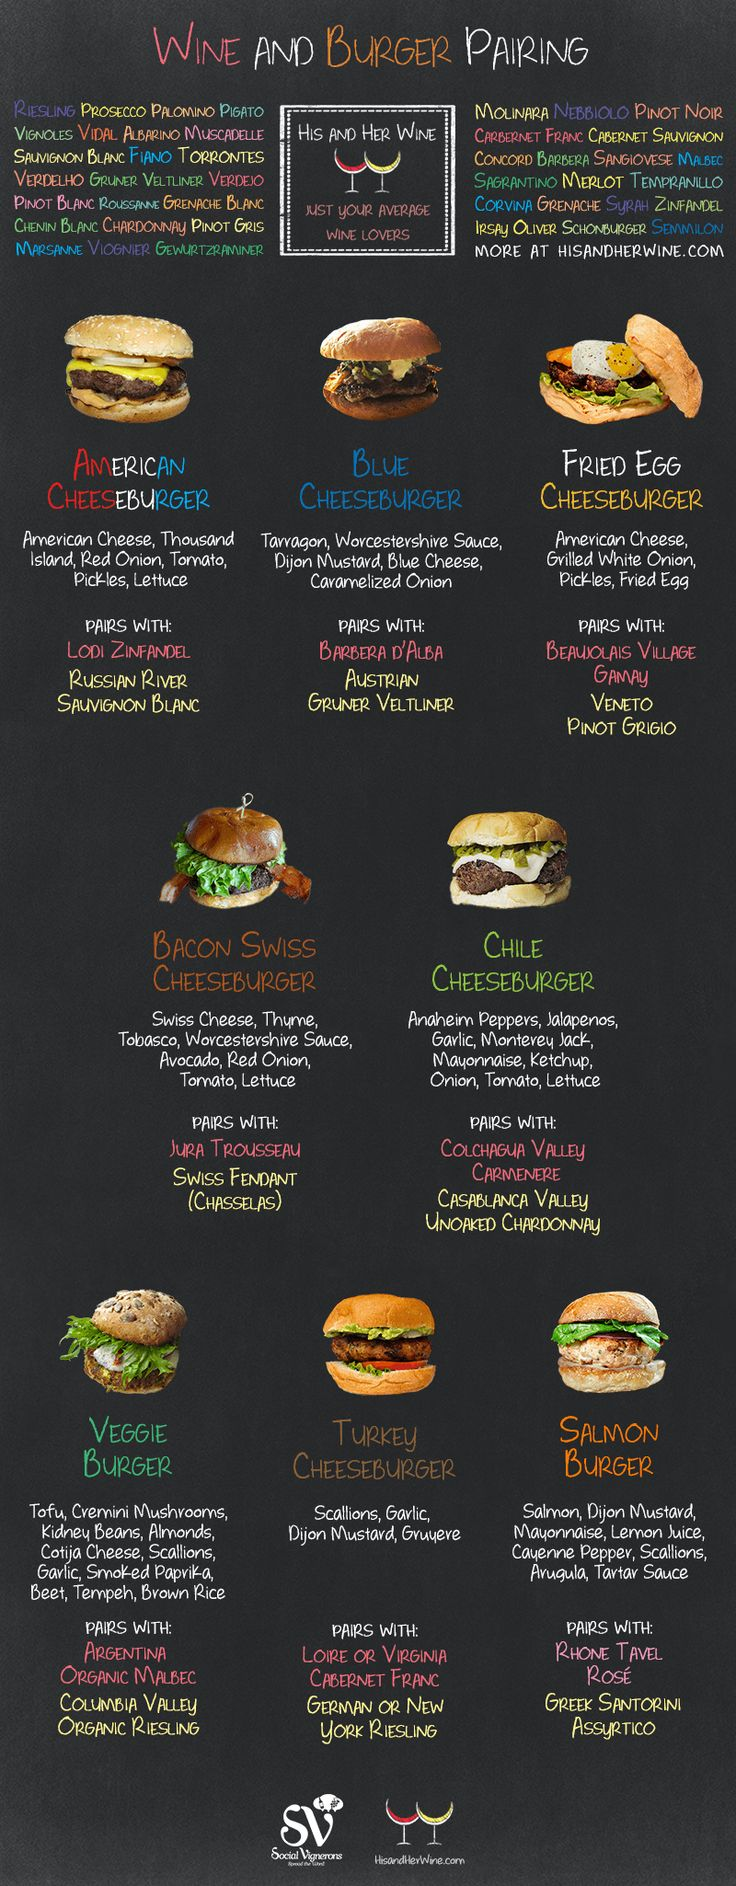 Wine And Burger Pairing | 8 Burgers with Red & White Wine Pairings